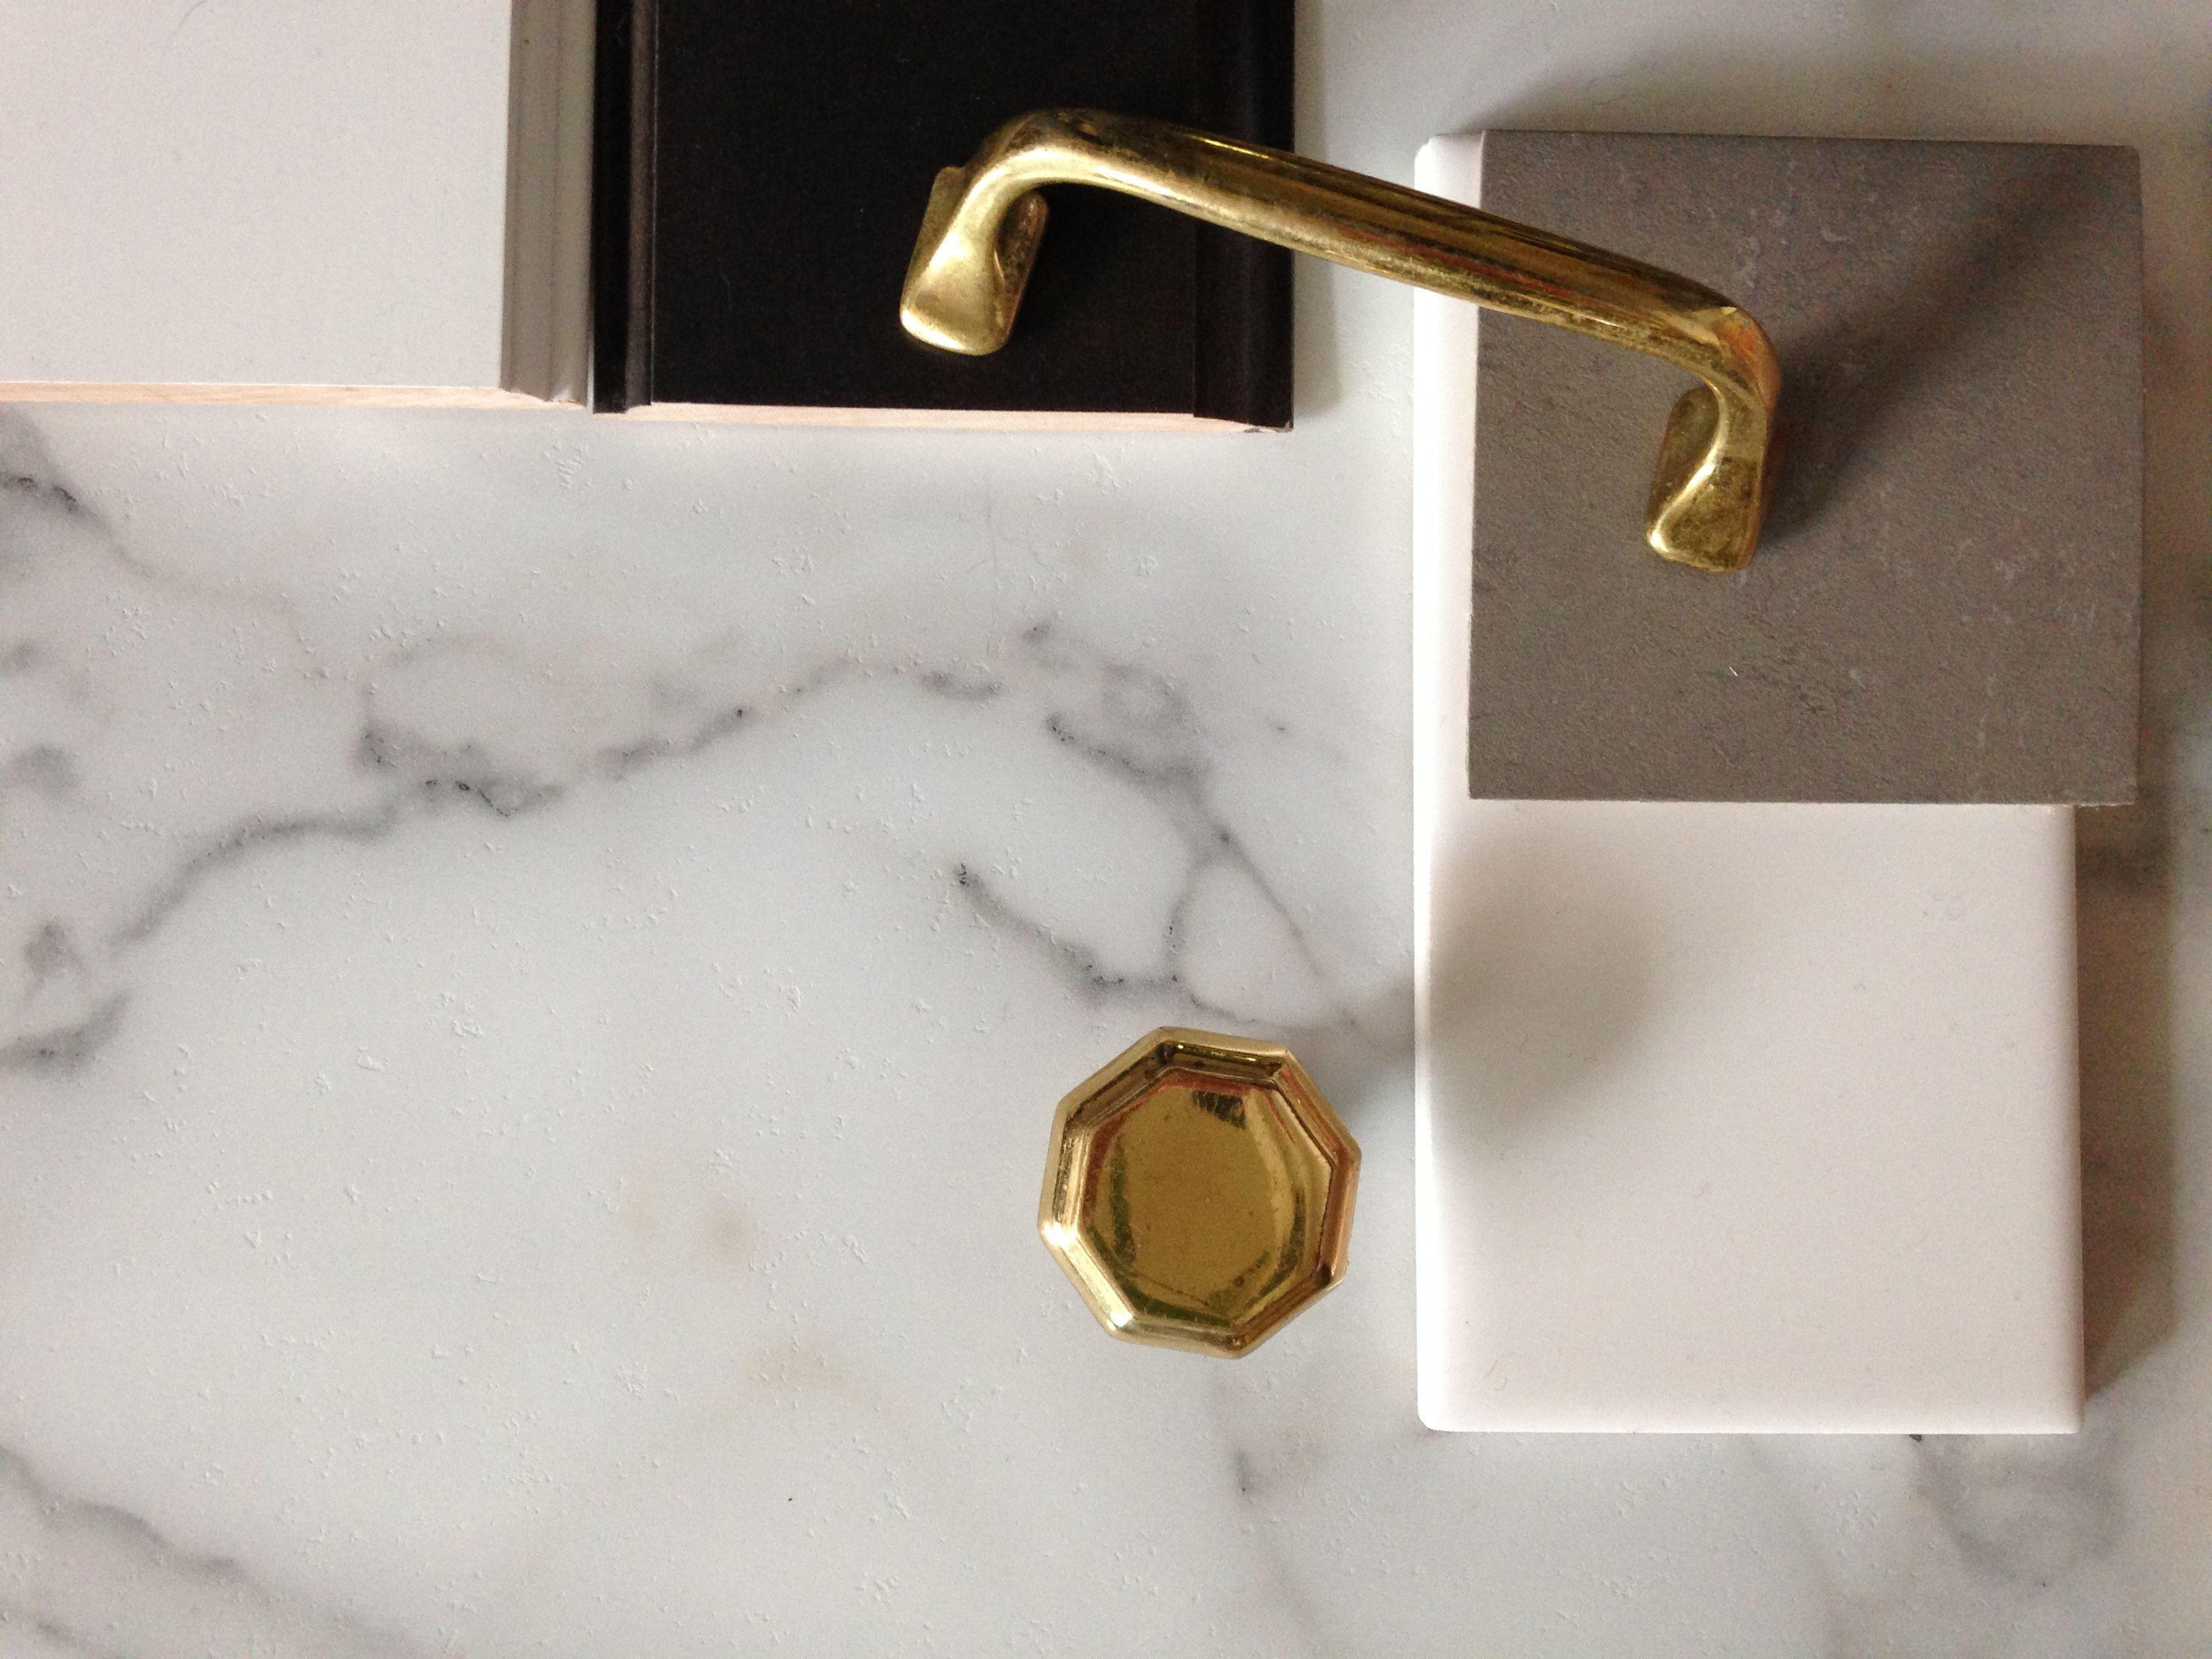 How To Get Stains Off Marble Countertop This Is It Folks So Gosh Darn Lovely Calacutta Marble